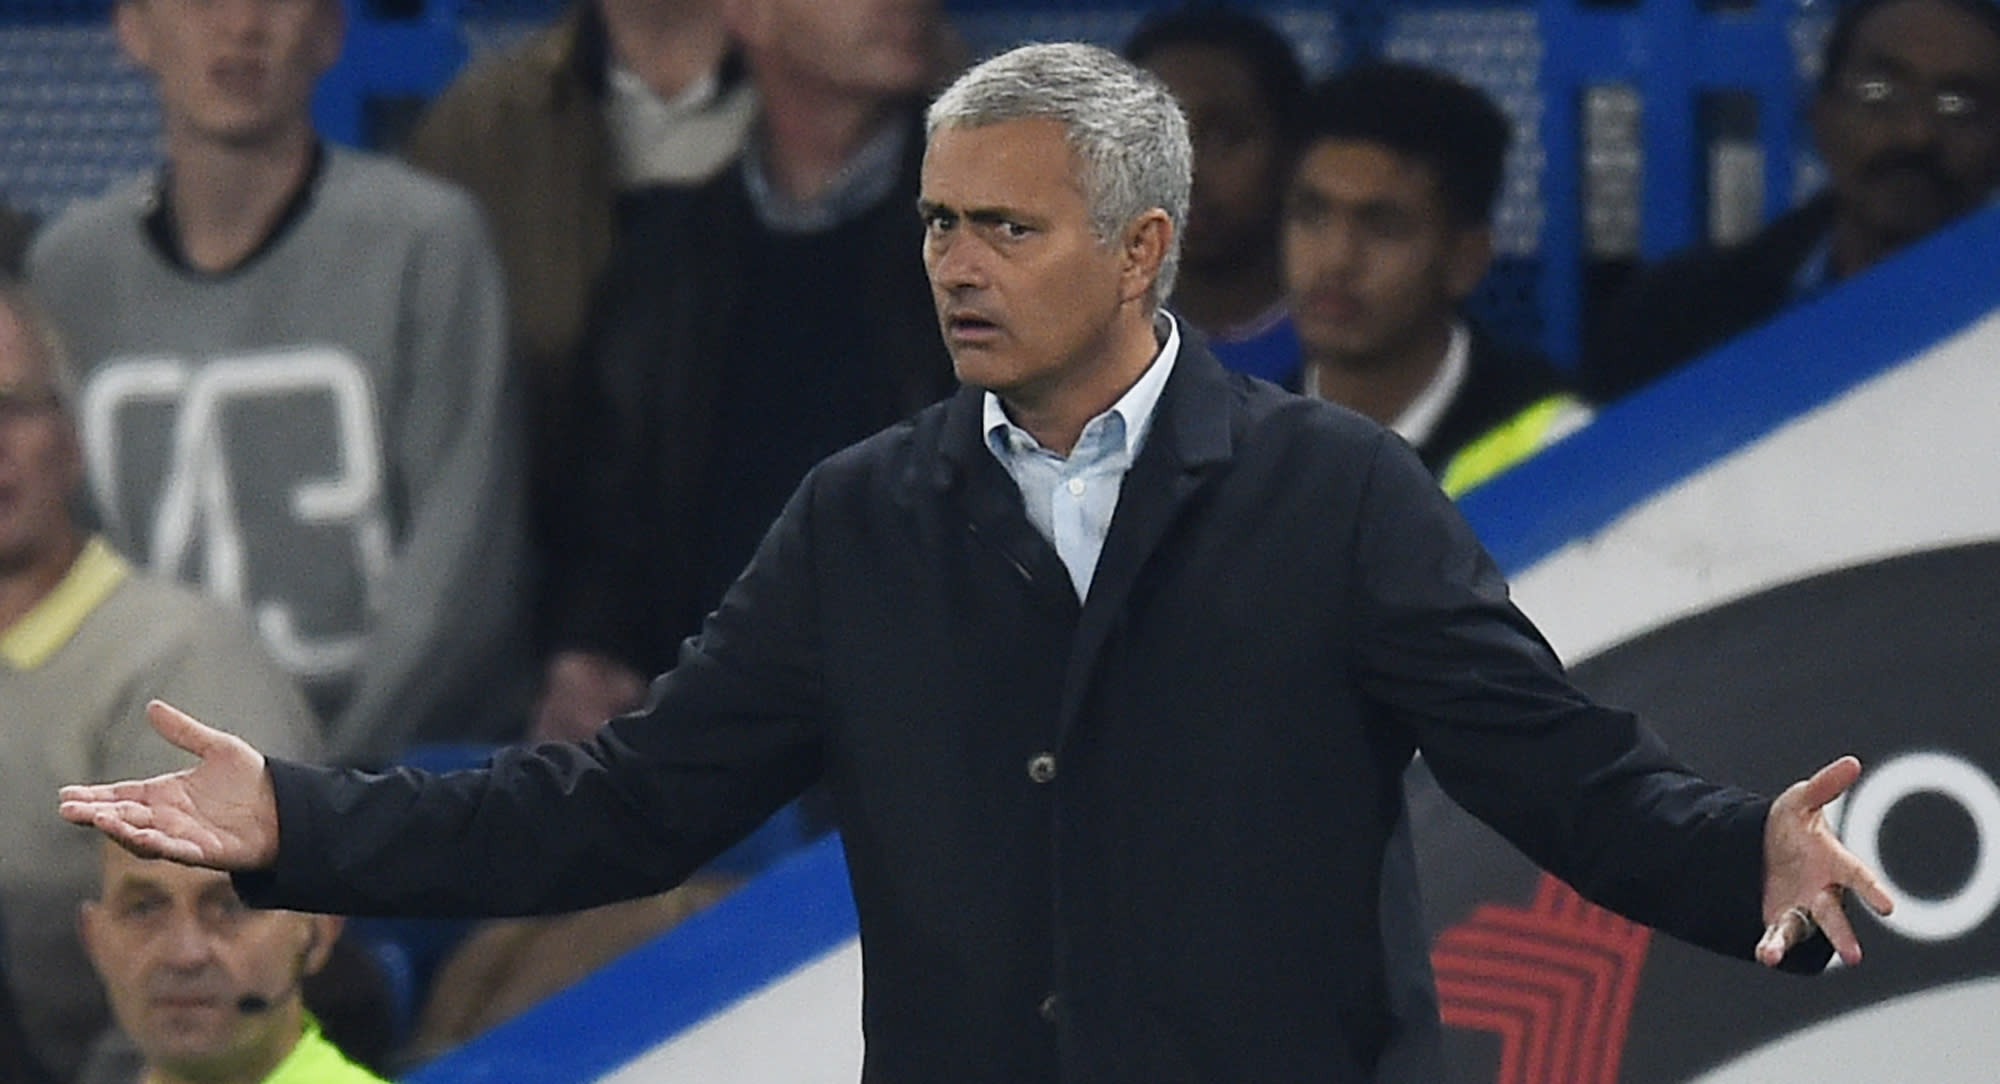 As Chelsea flounders, Jose Mourinho is running out of people to blame